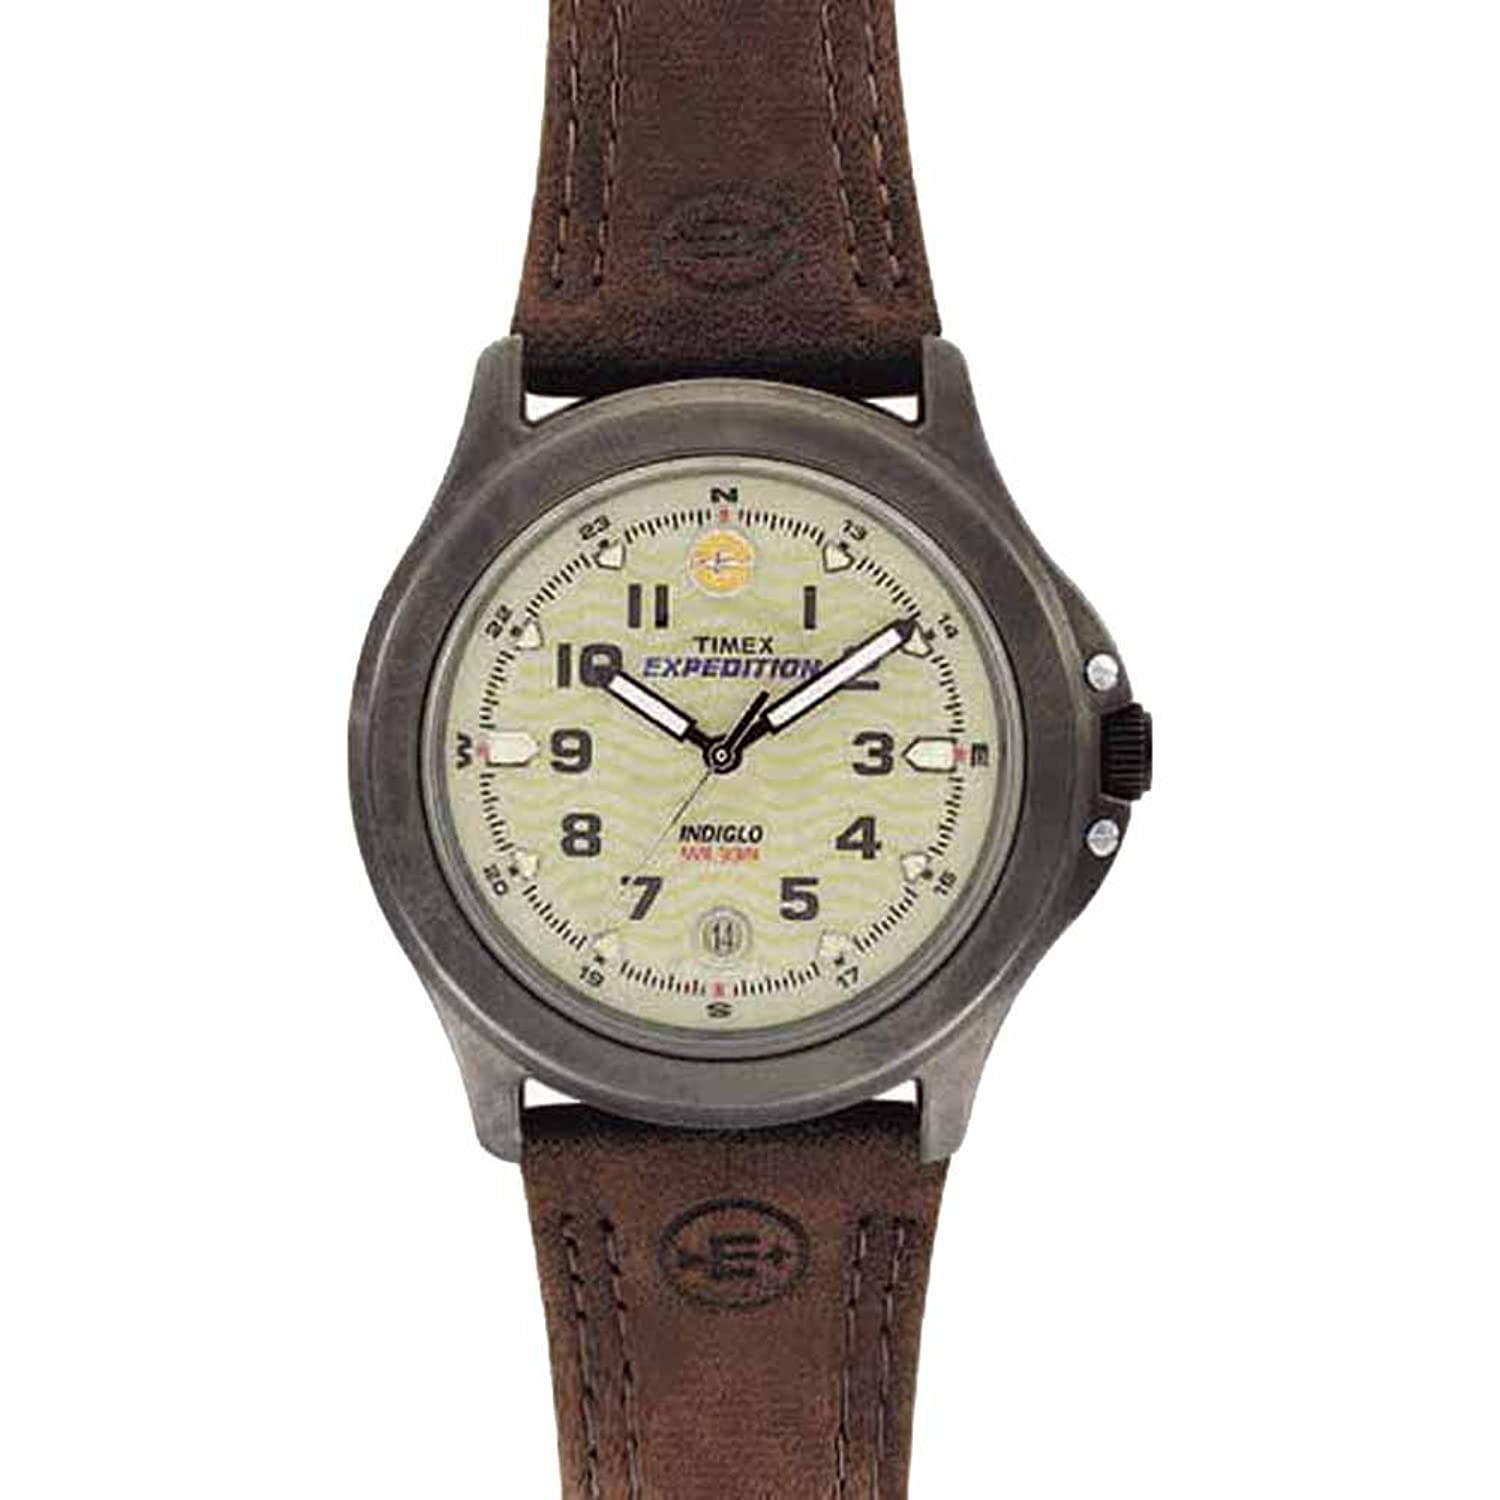 Timex T47042 Expedition Metal Field Mineral Glass Crystal Brushed Finish timex t5k808